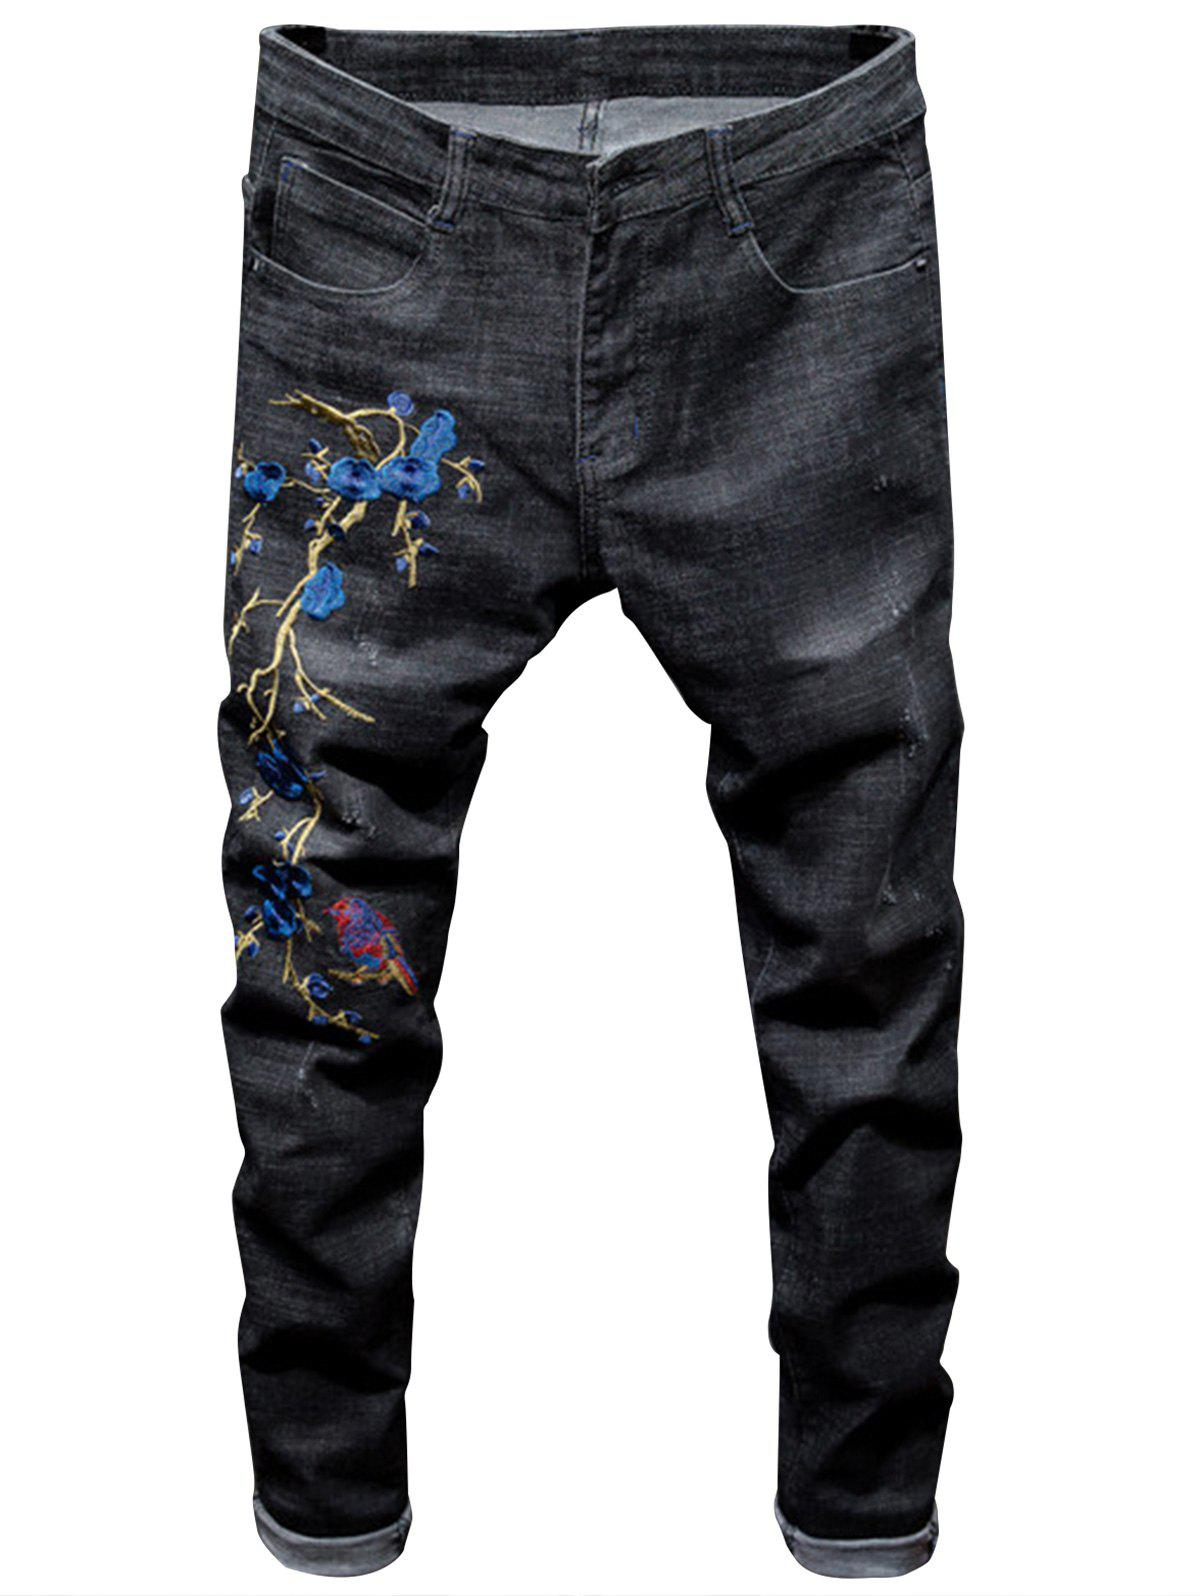 Online Bird and Florals Embroidered Ripped Jeans